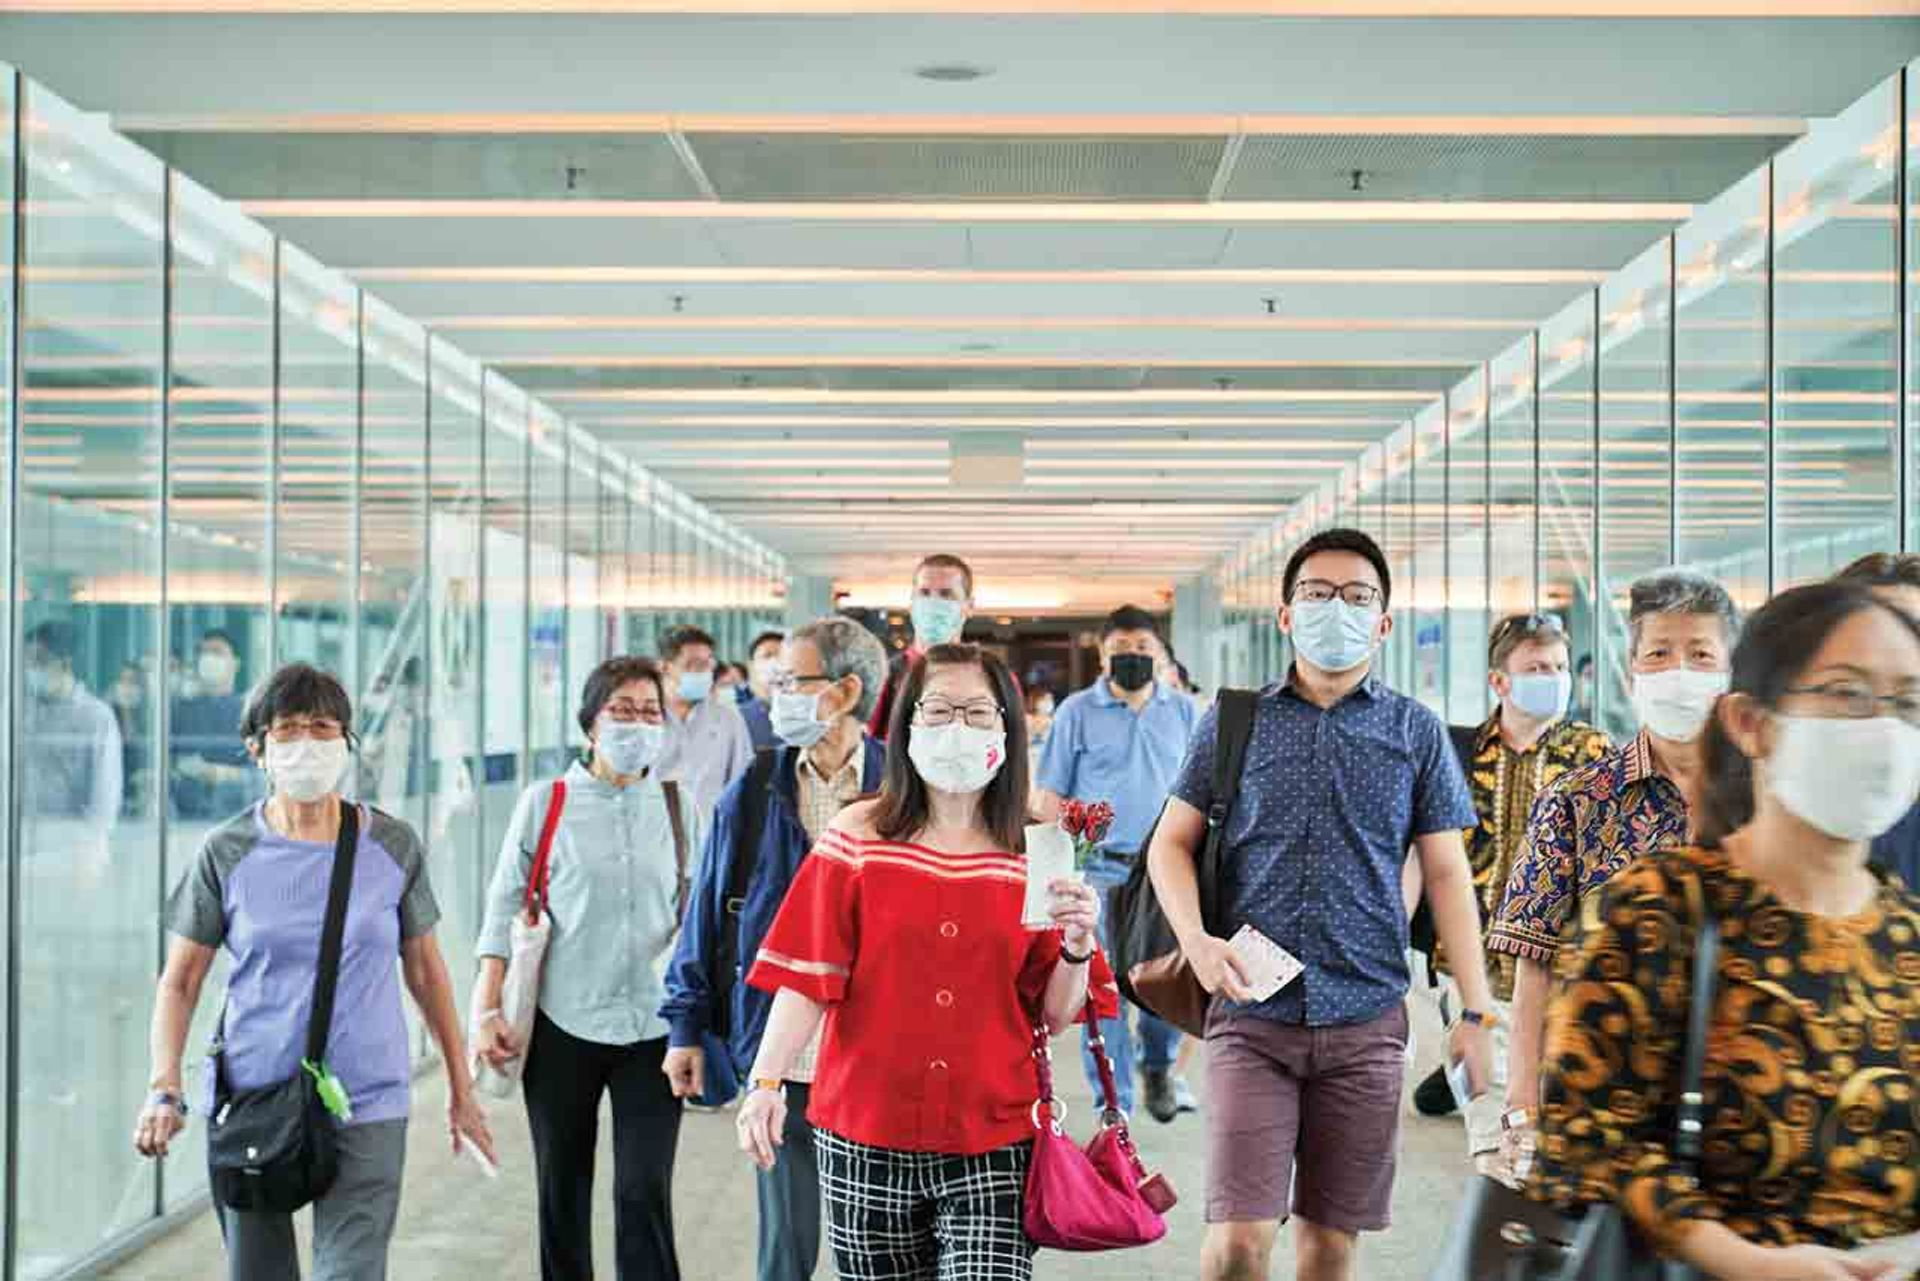 Singapore's borders are open only to residents and permit holders, subject to quarantine Lauryn Ishak/Bloomberg via Getty Images